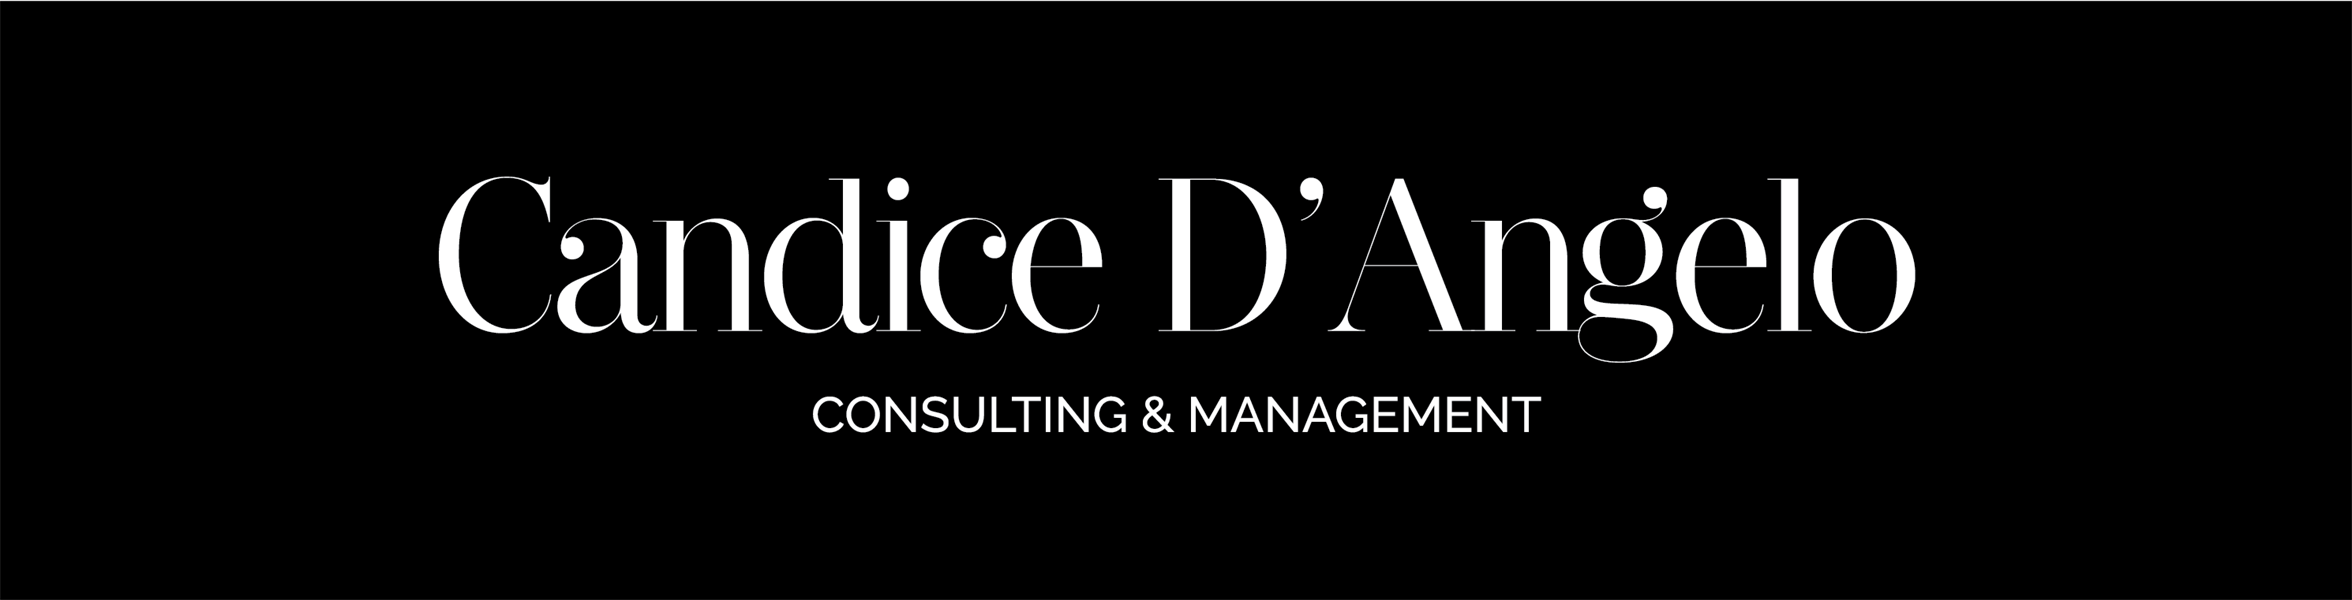 Candice D'Angelo Consulting and Management, LLC